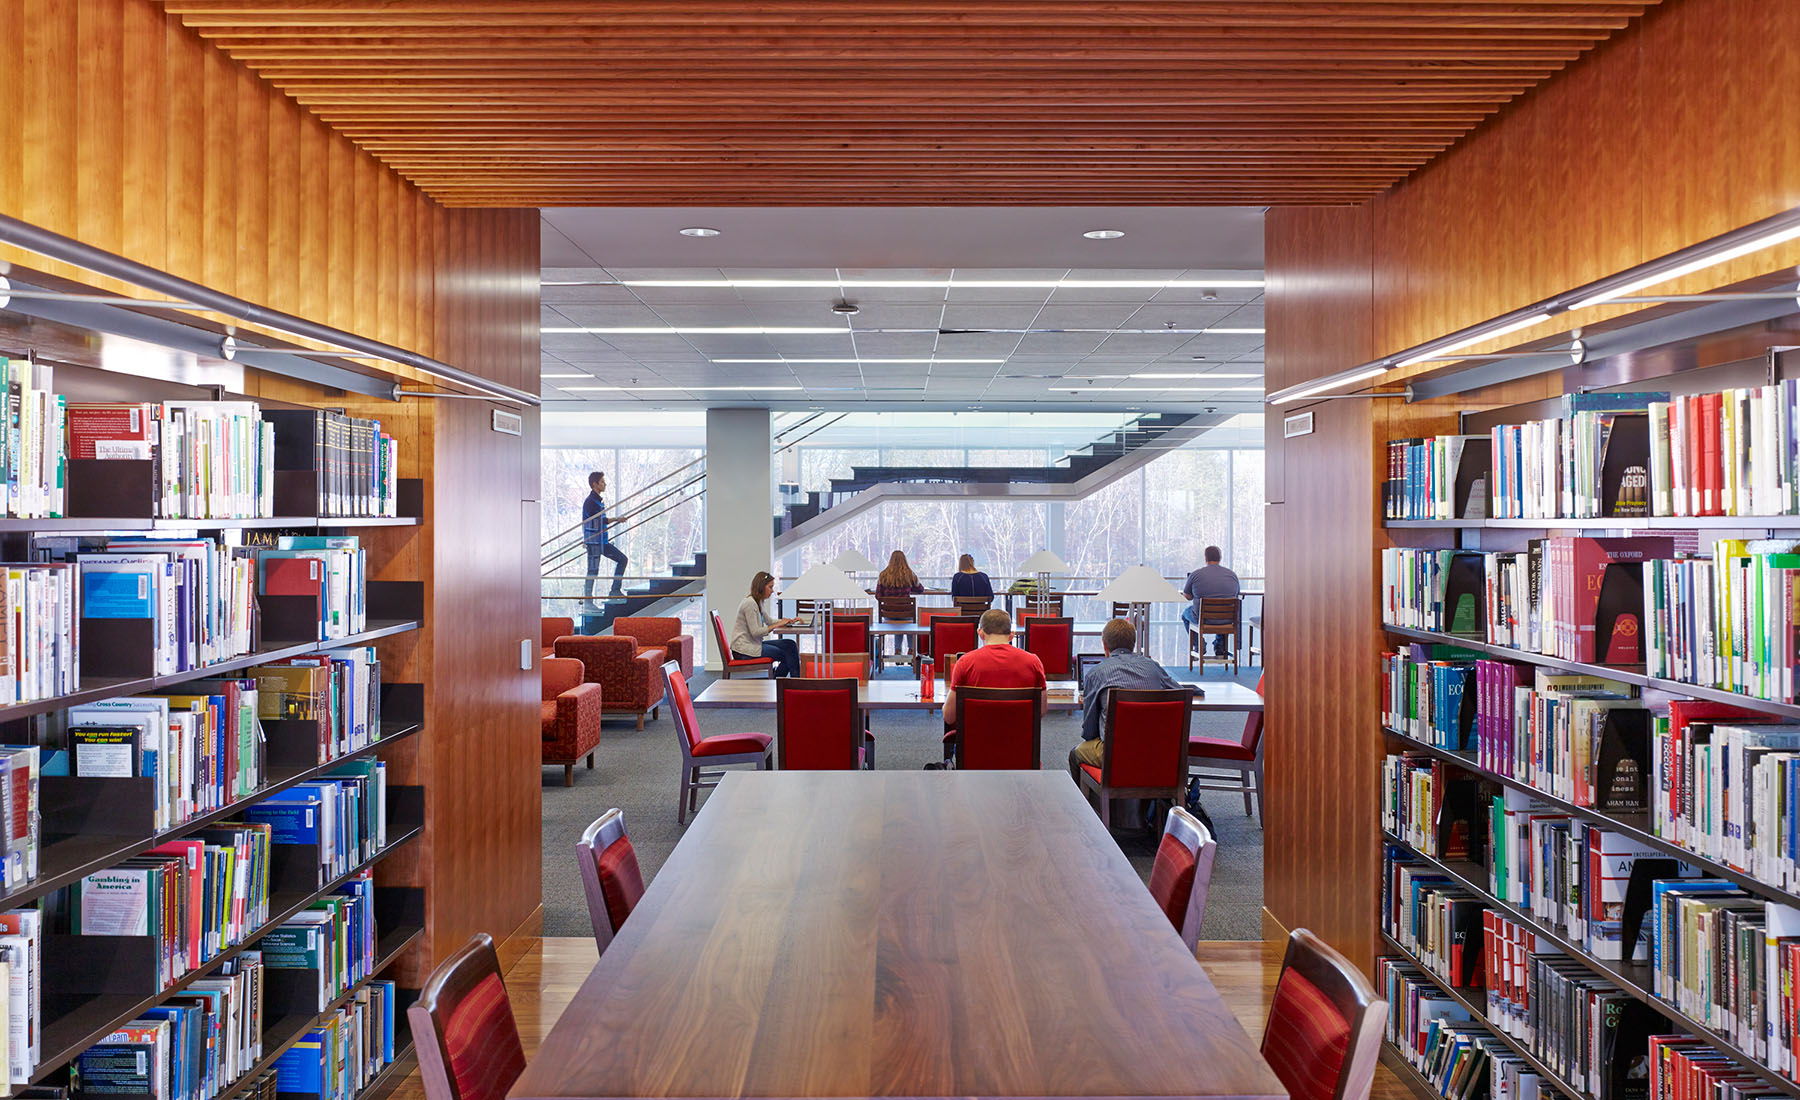 Compared to prototypical libraries of the past, Liberty's new flagship library reverses the notion of book storage as the central motive of a library's design in favor of a user-centric layout that places student activity in the foreground.